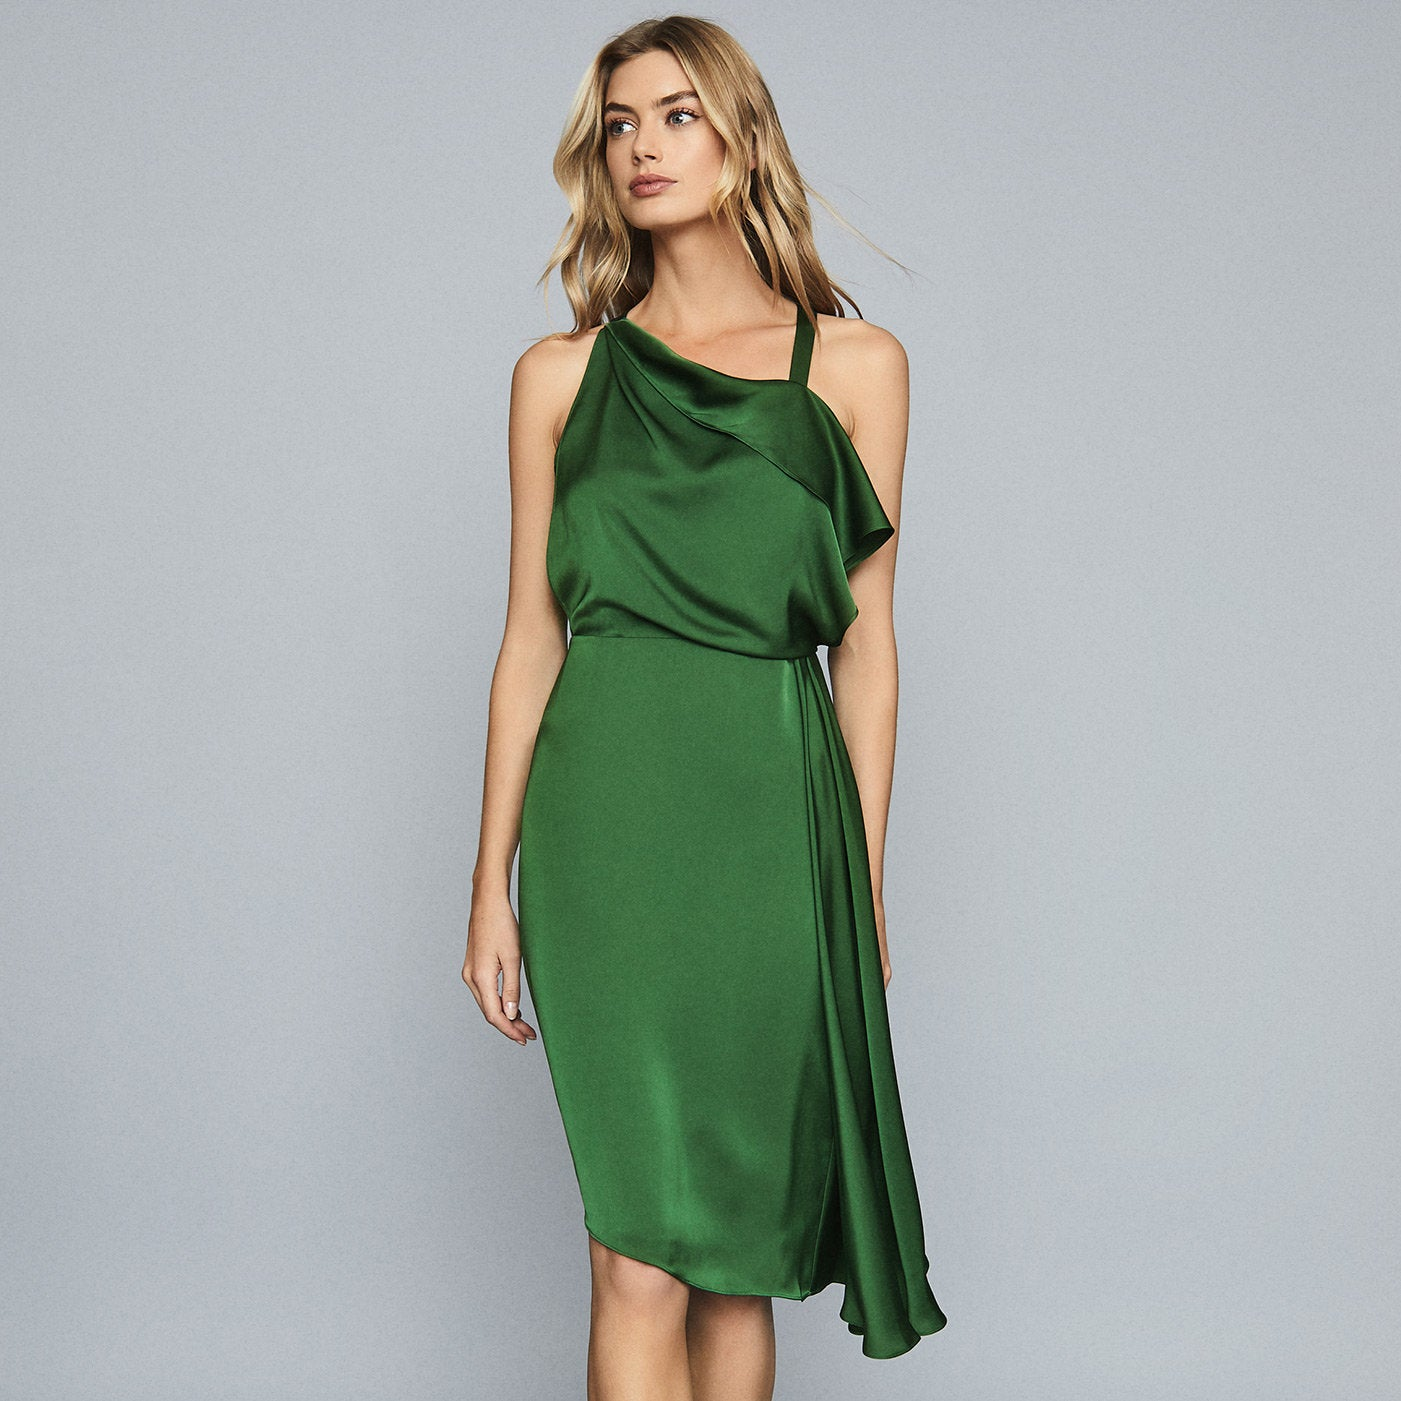 reiss green dress